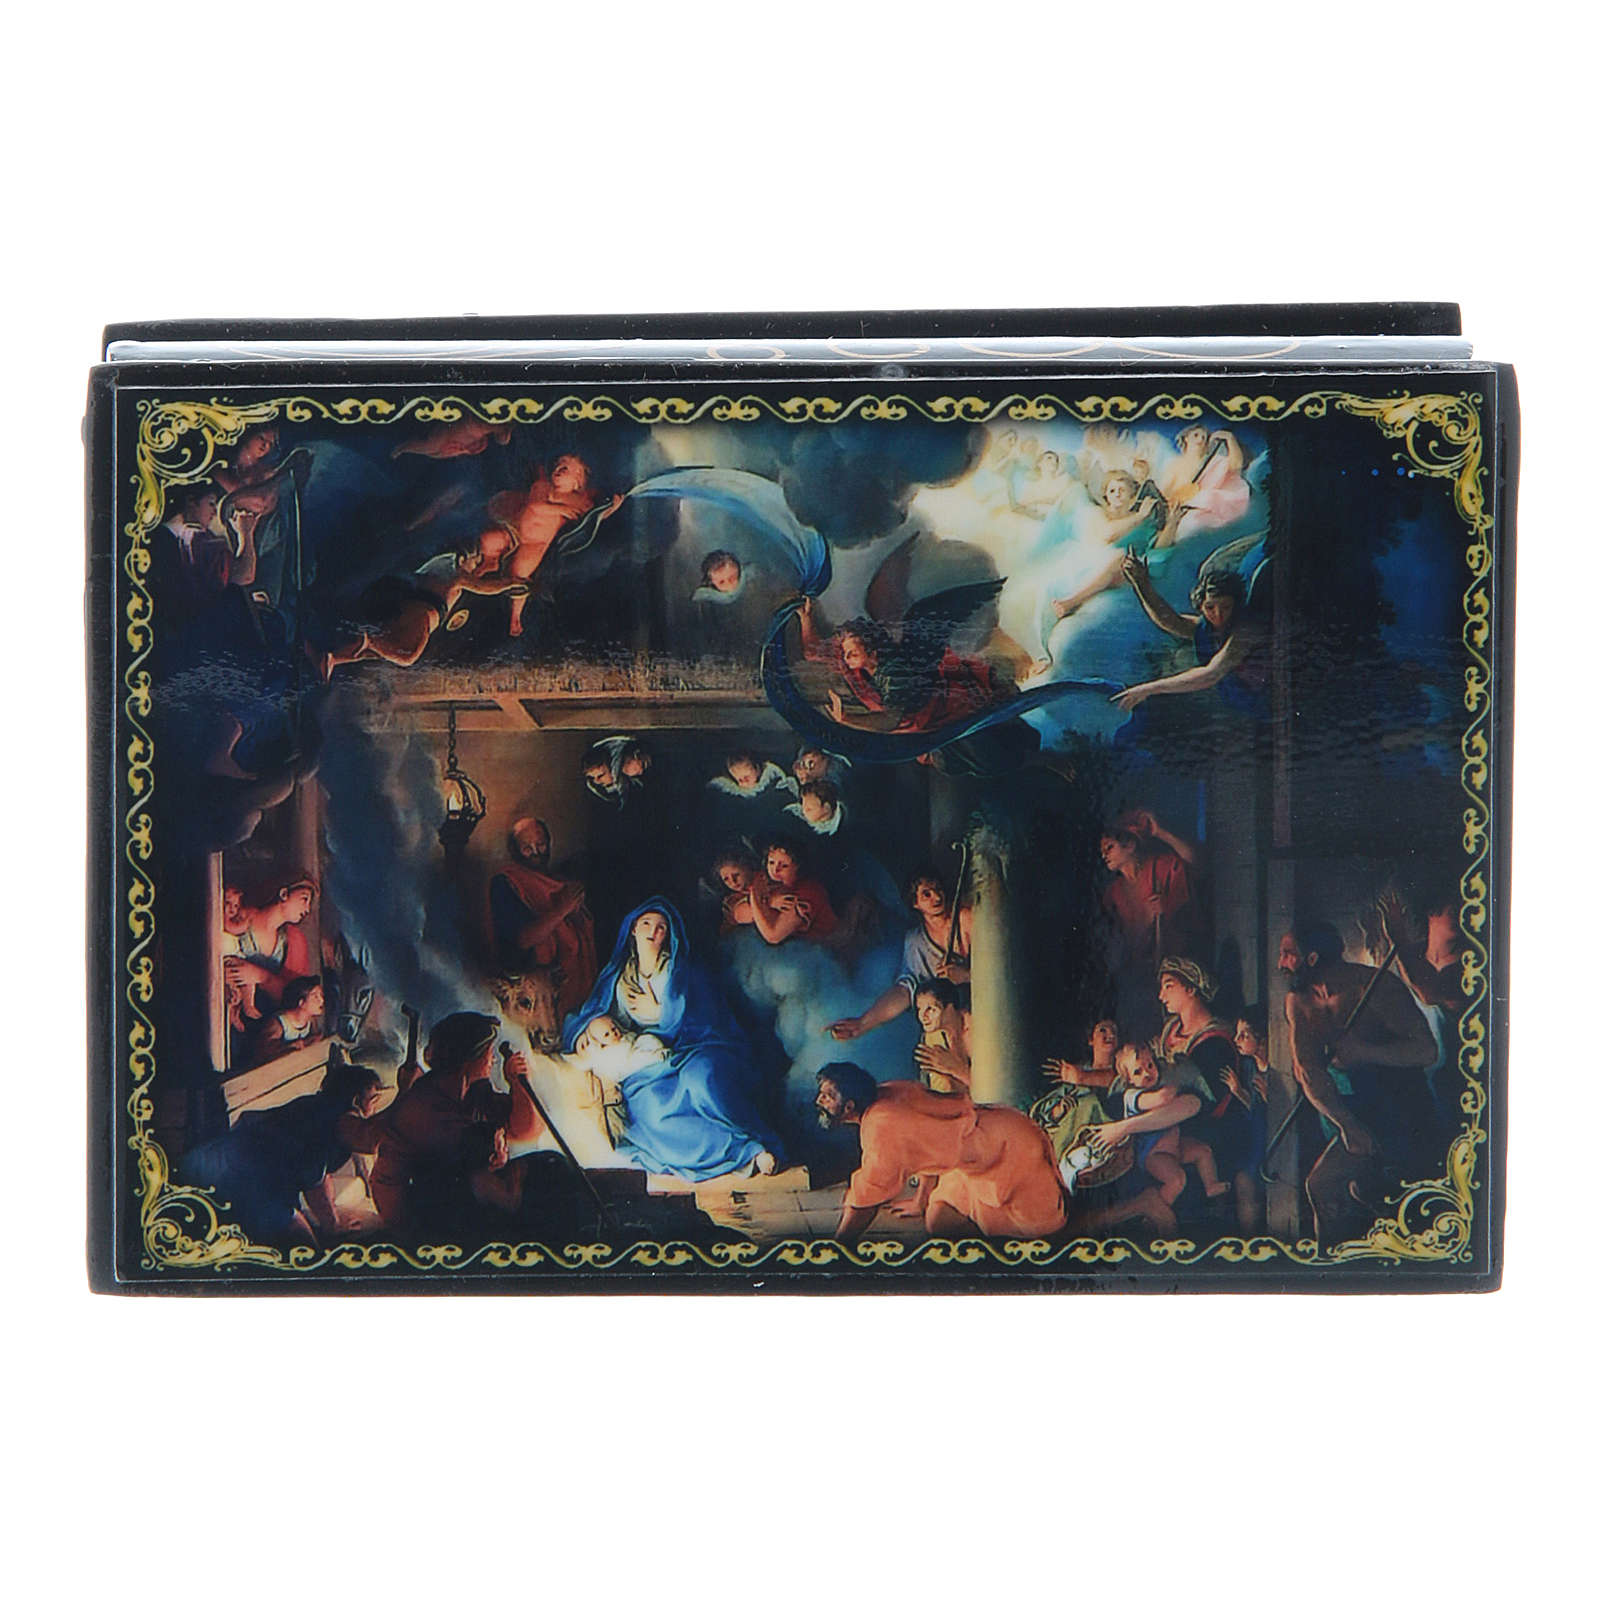 Russian lacquer box, Nativity and Adoration of the Magi 9x6 cm 4